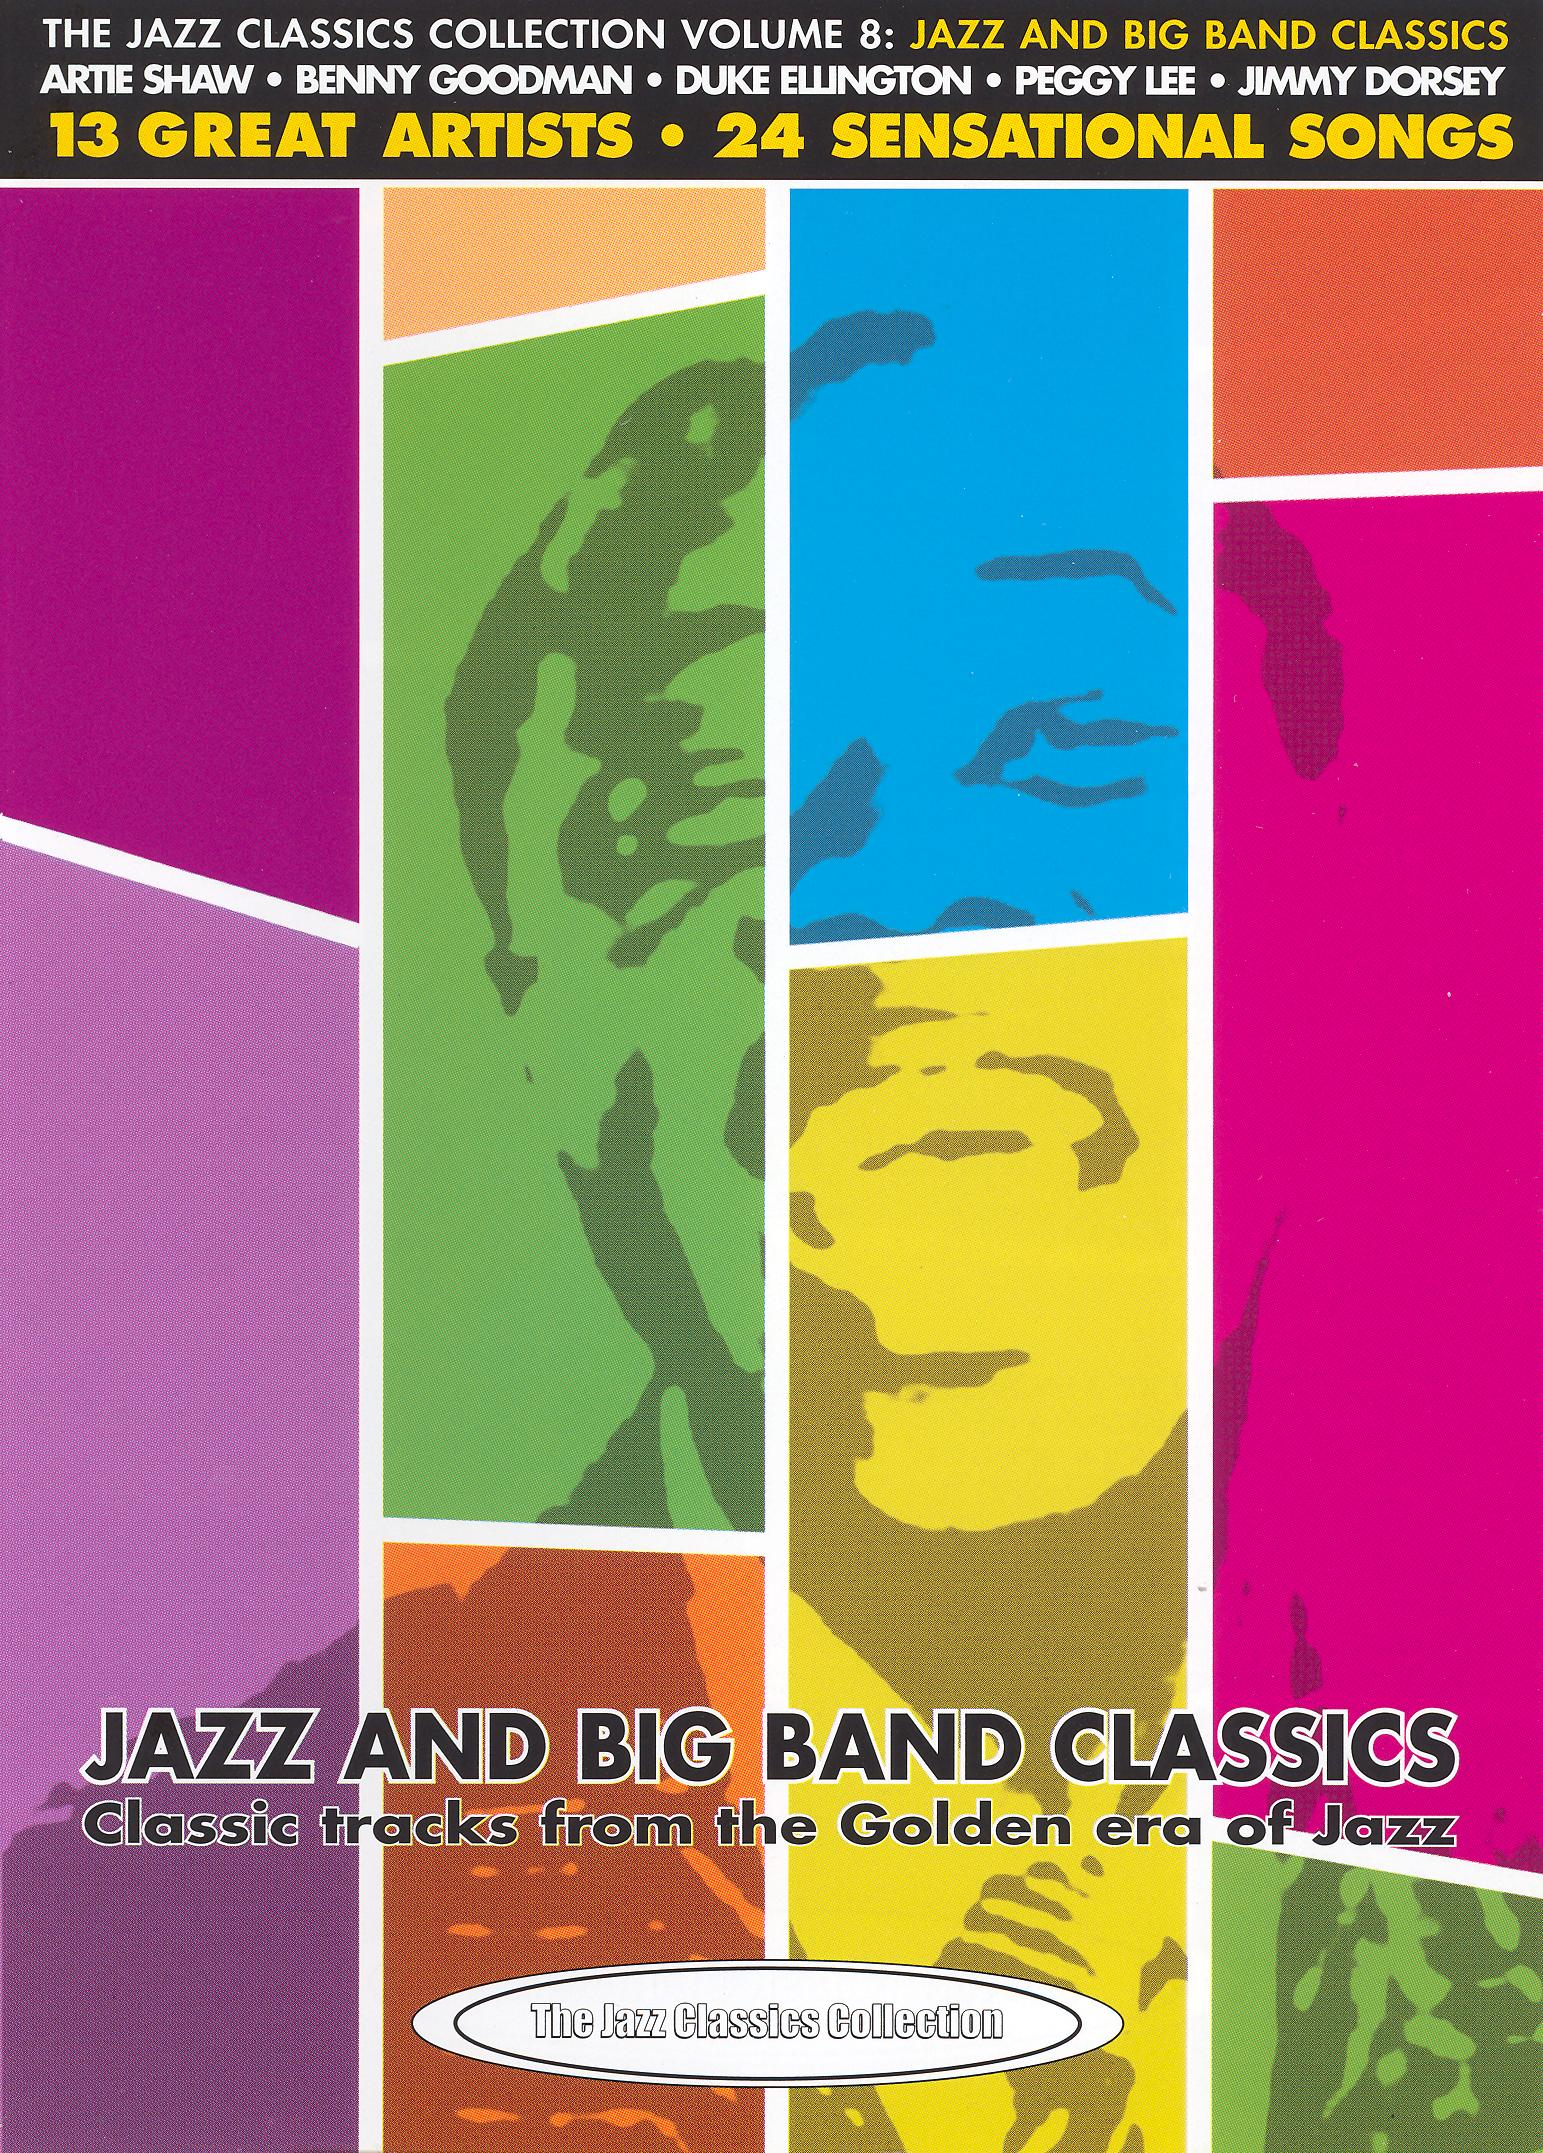 Jazz Classics Collection, Vol. 8: Jazz and Big Band Classics